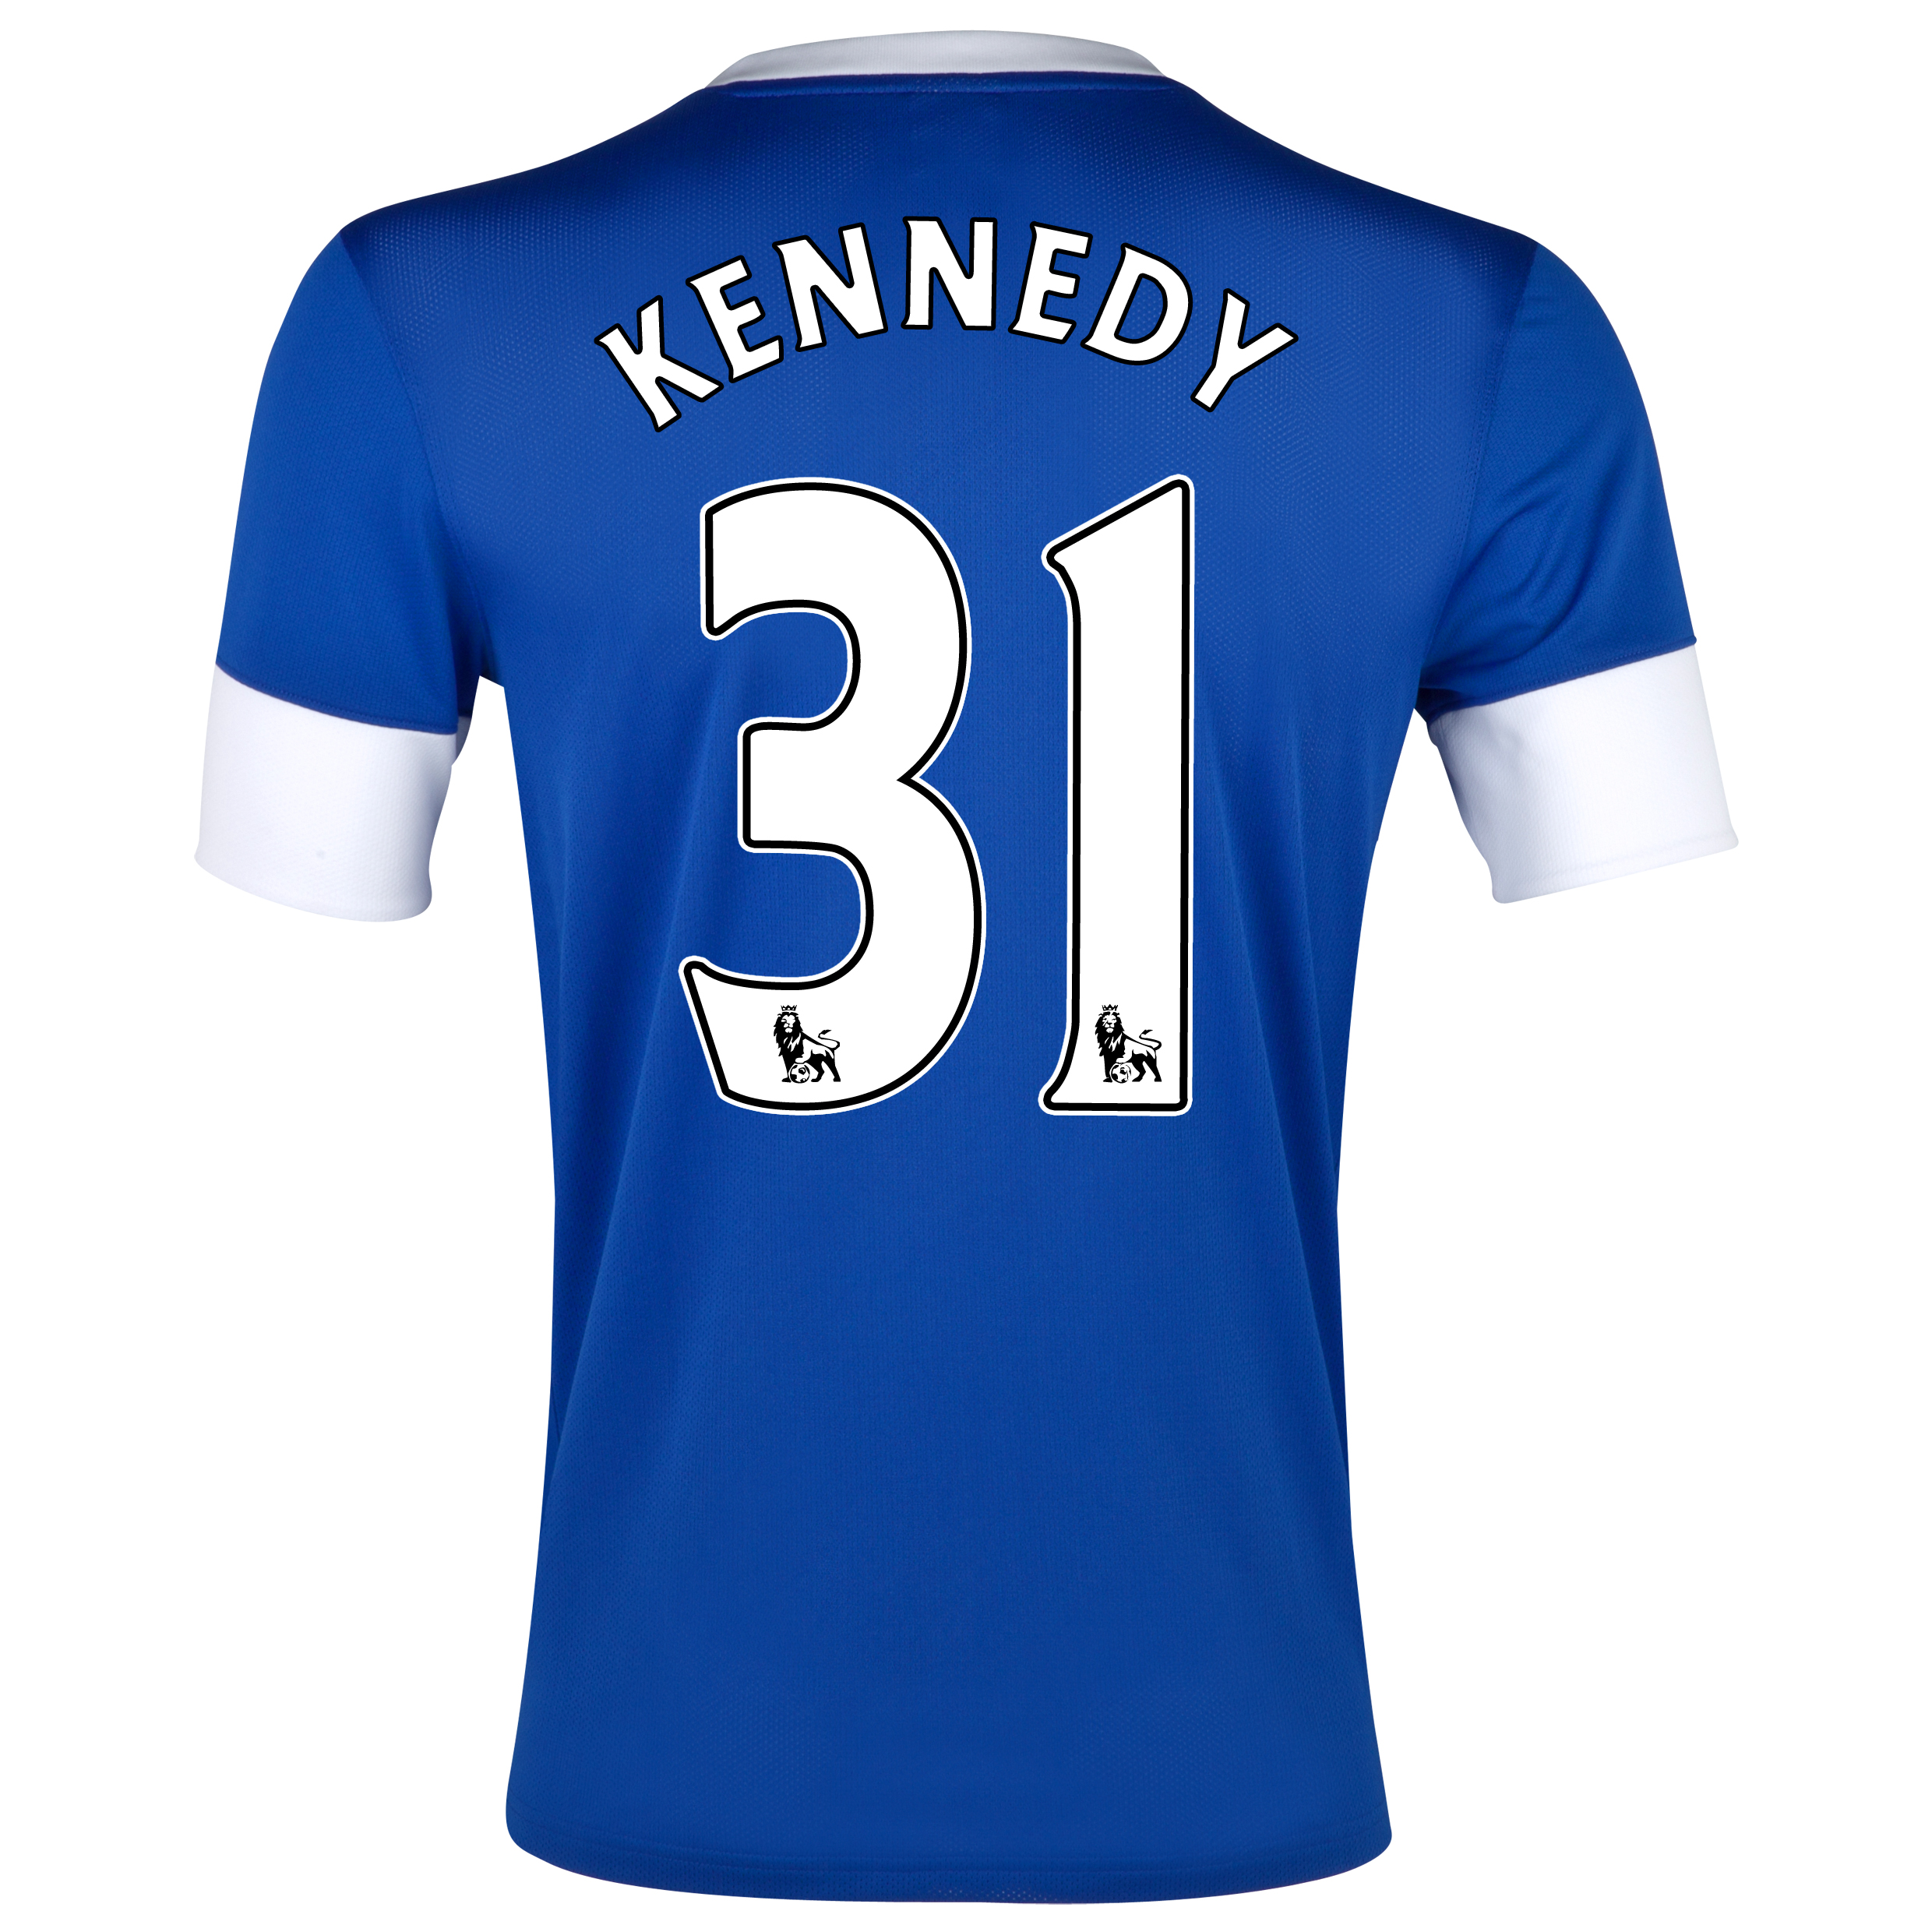 Everton Home Shirt 2012/13 with Kennedy 31 printing